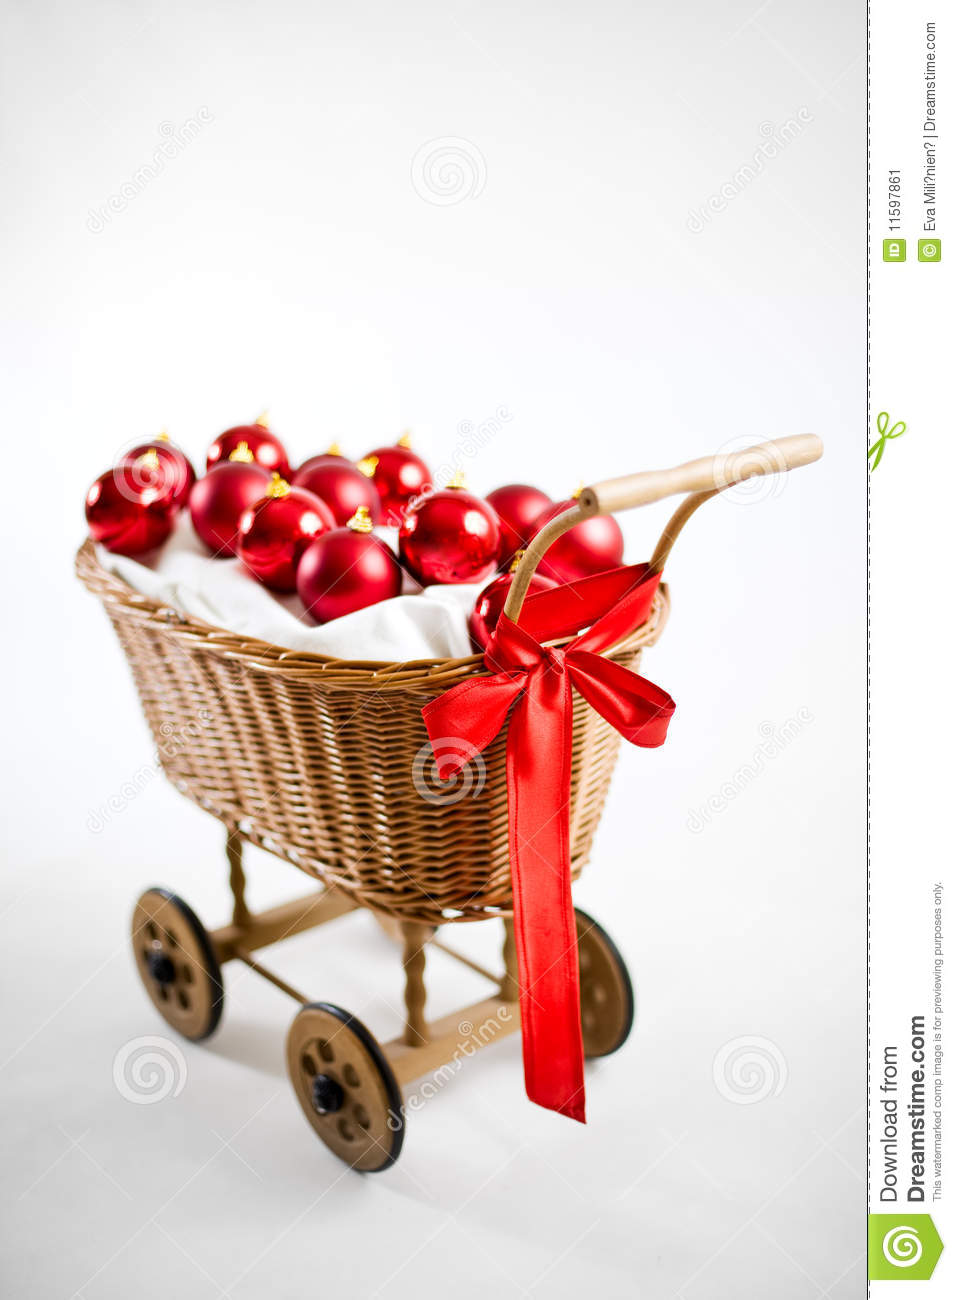 19ccf88187 Christmas Cart With Baubles Stock Image - Image of winter